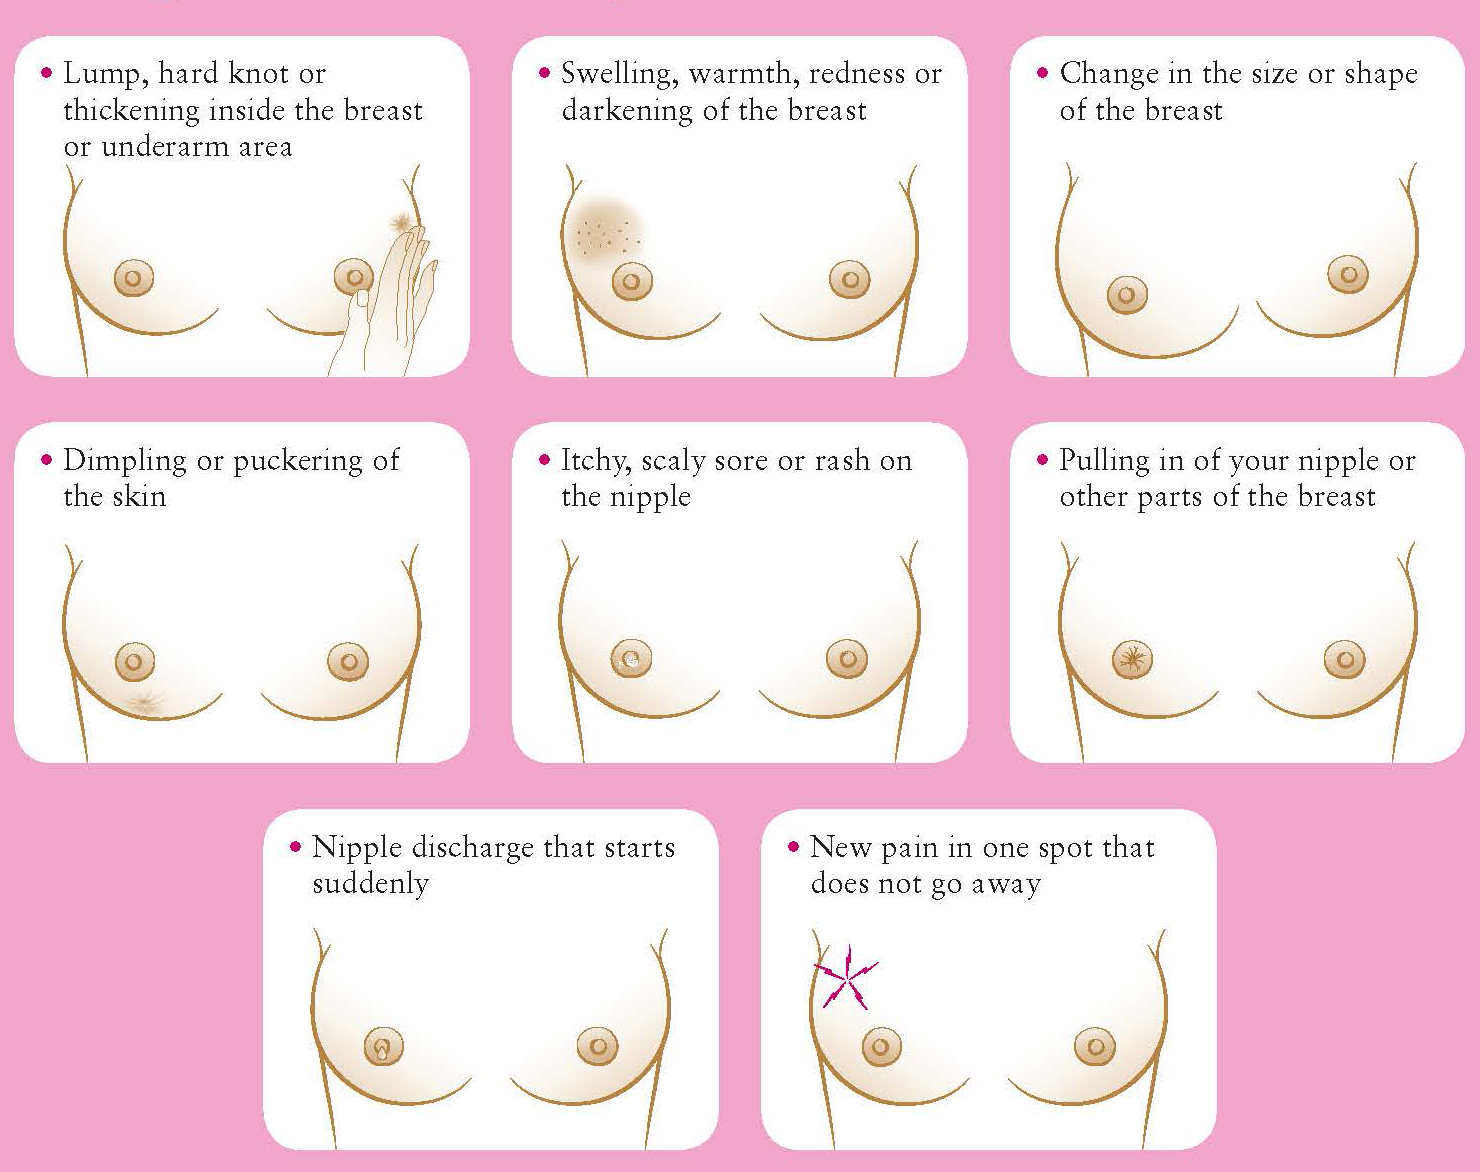 pain warning Breast cancer signs